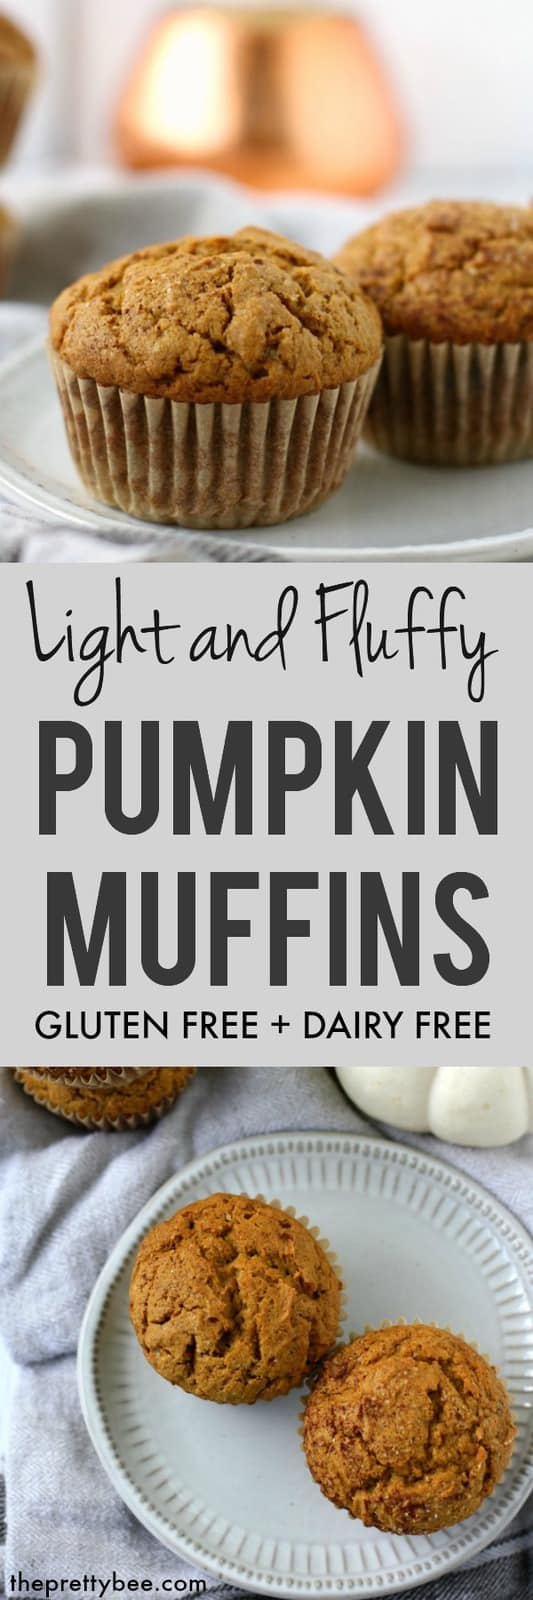 The perfect fall recipe - enjoy these gluten free pumpkin muffins with a cup of hot tea or cider for a perfect treat! These are light, fluffy, and delicious! #glutenfree #dairyfree #pumpkin